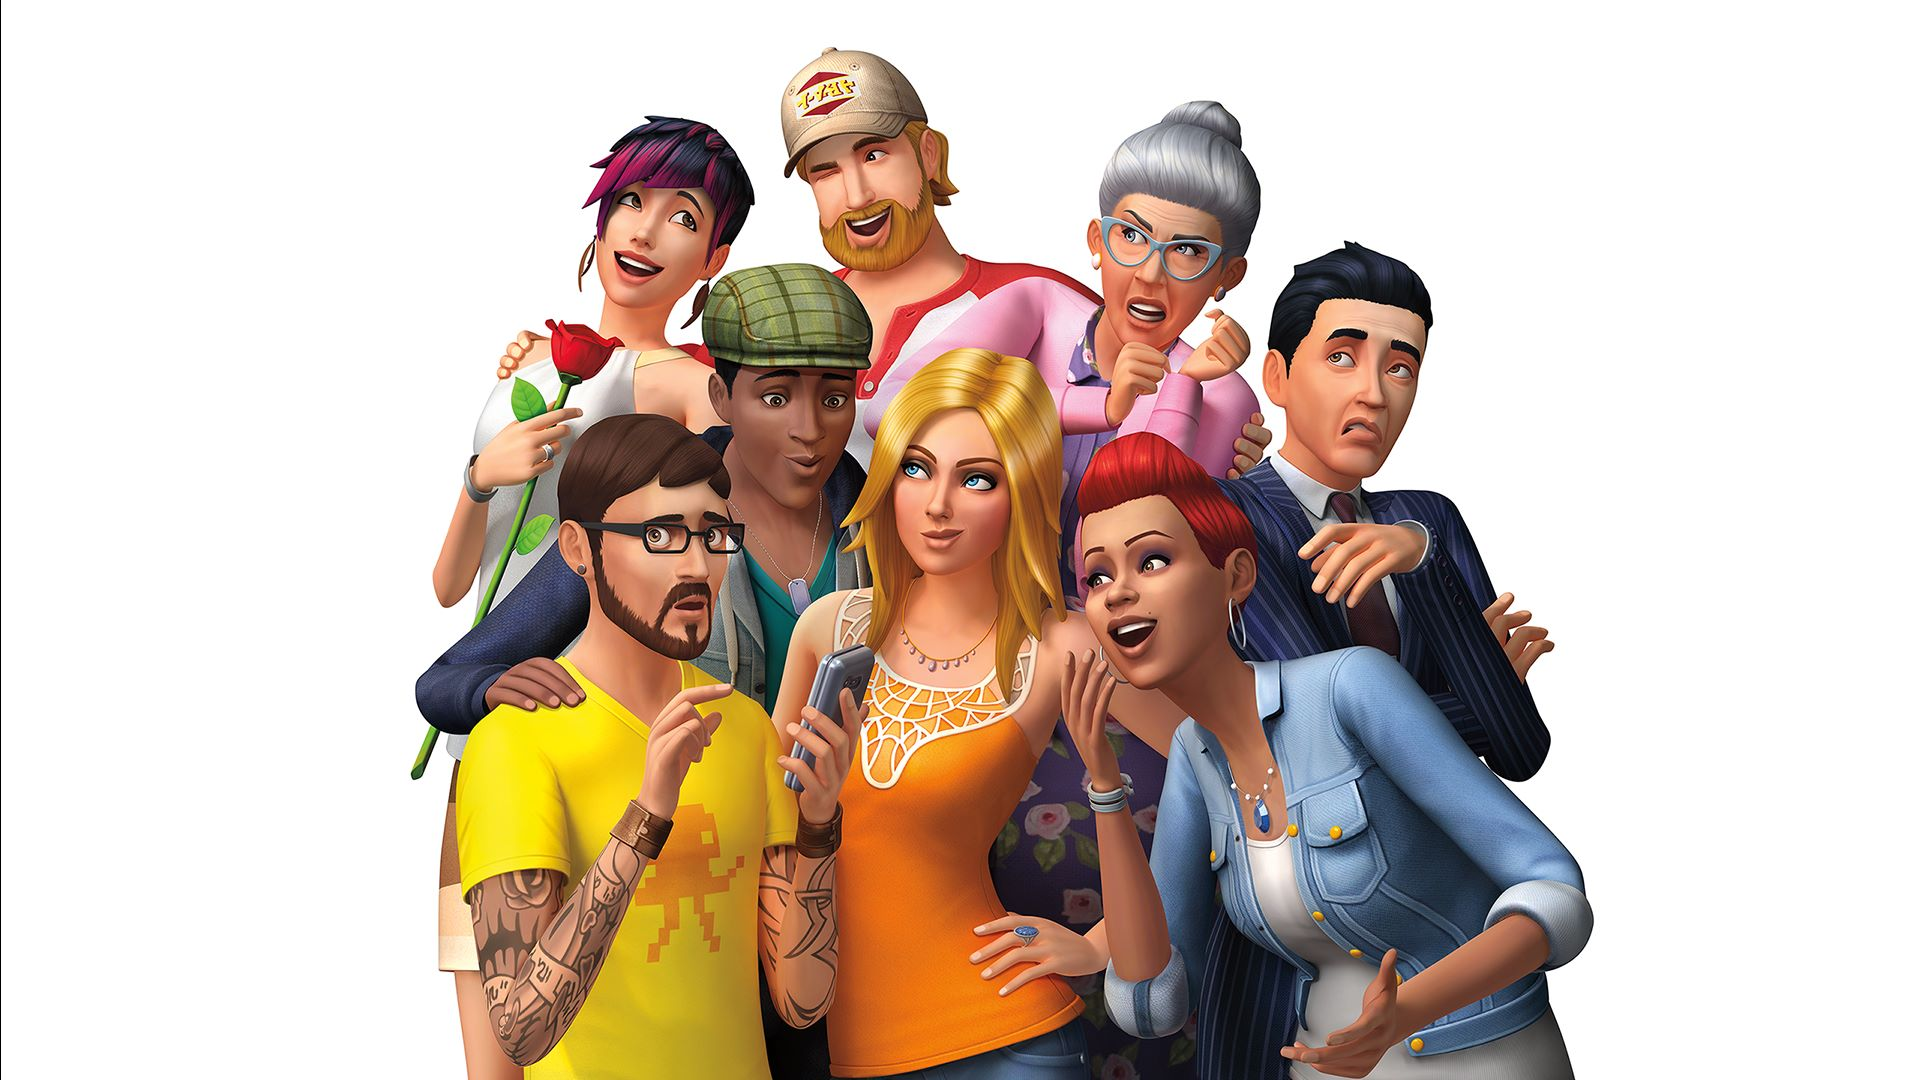 the sims 4 latest crack download